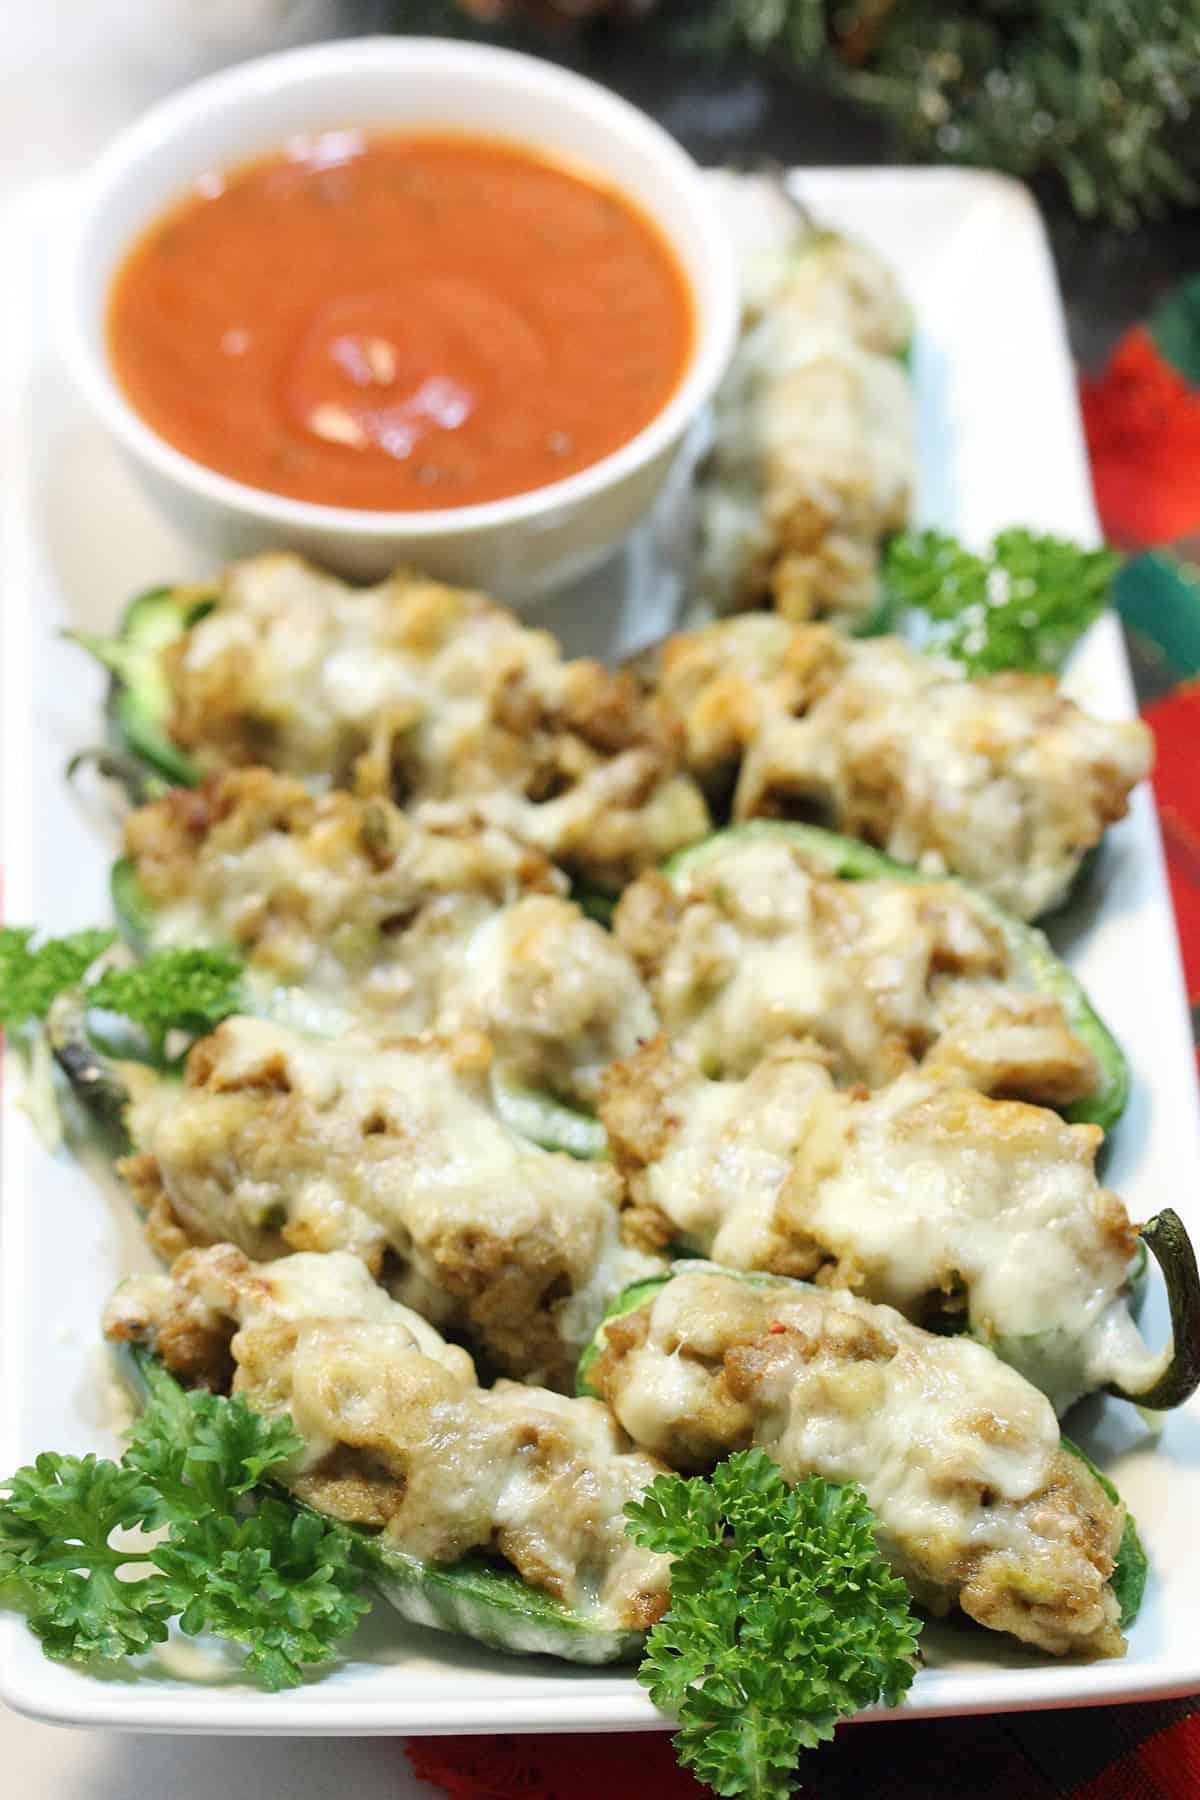 Plateful of poppers with marinara dipping sauce.